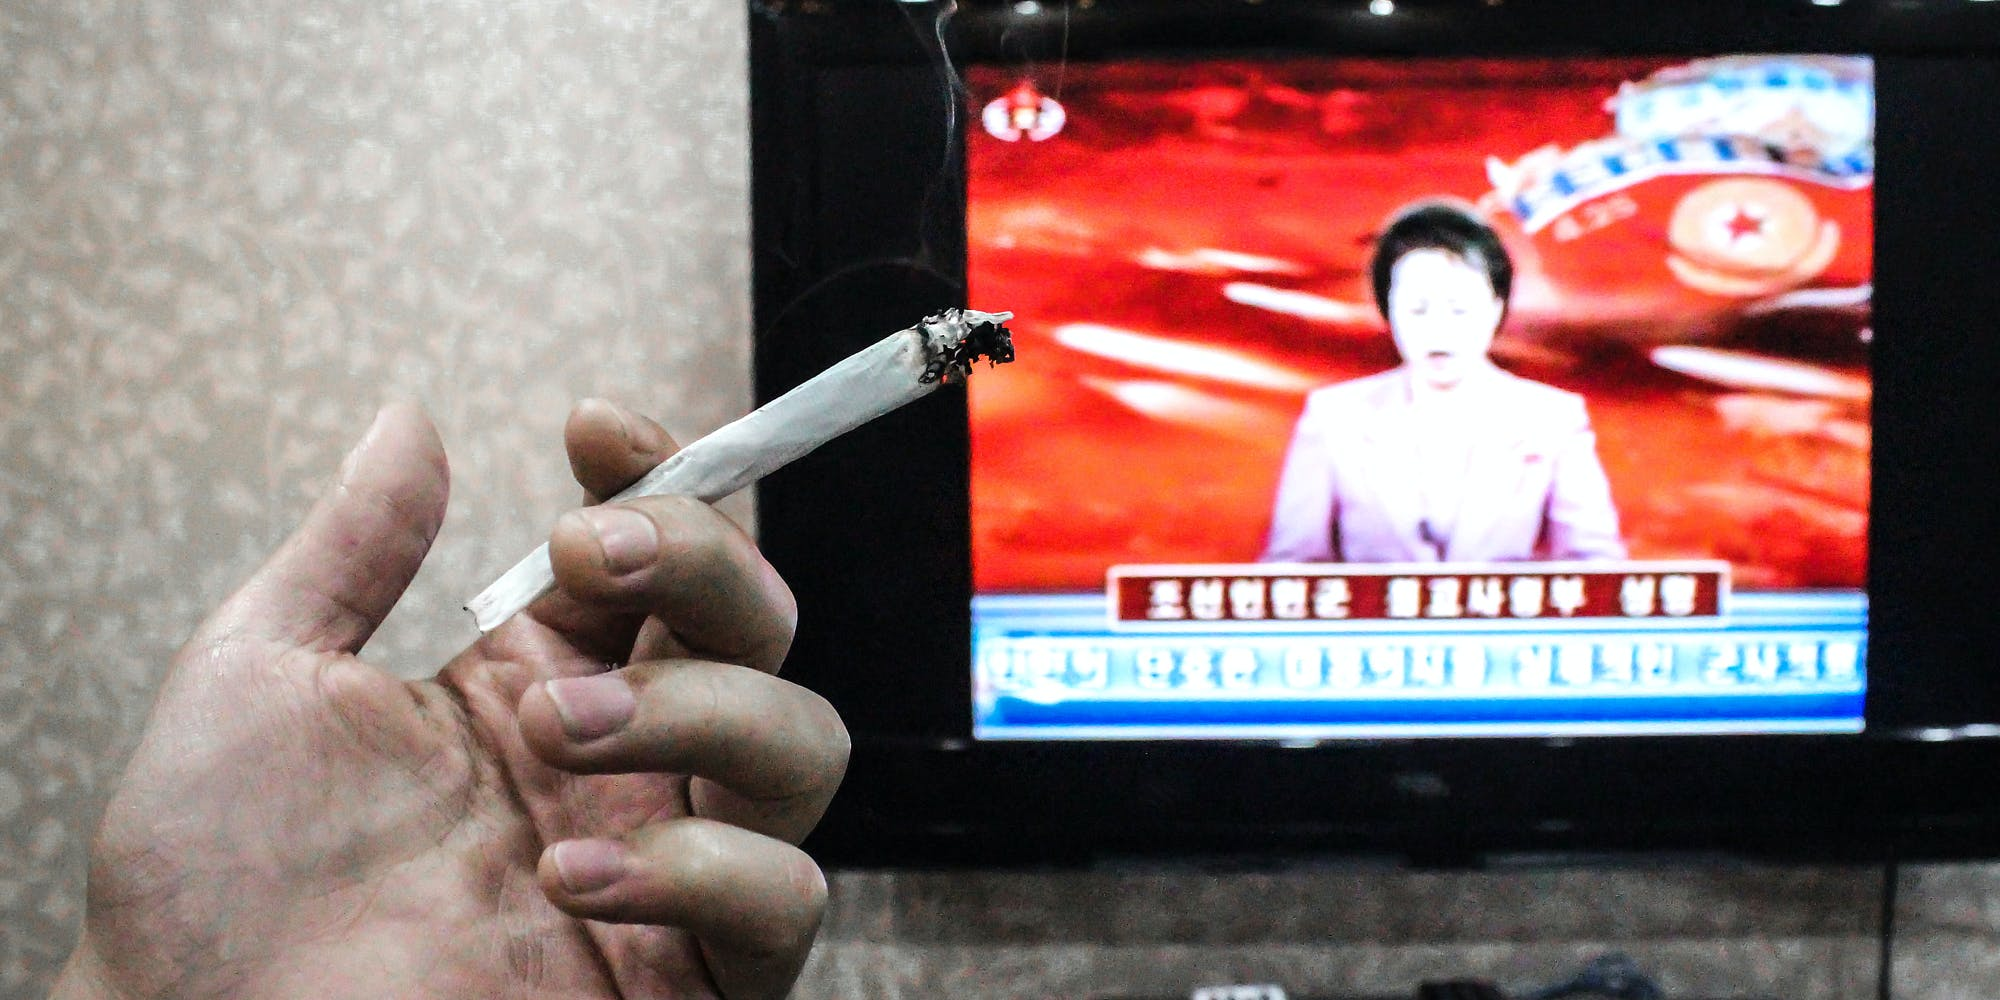 Rare Photos Of Weed Smoking In North Korea